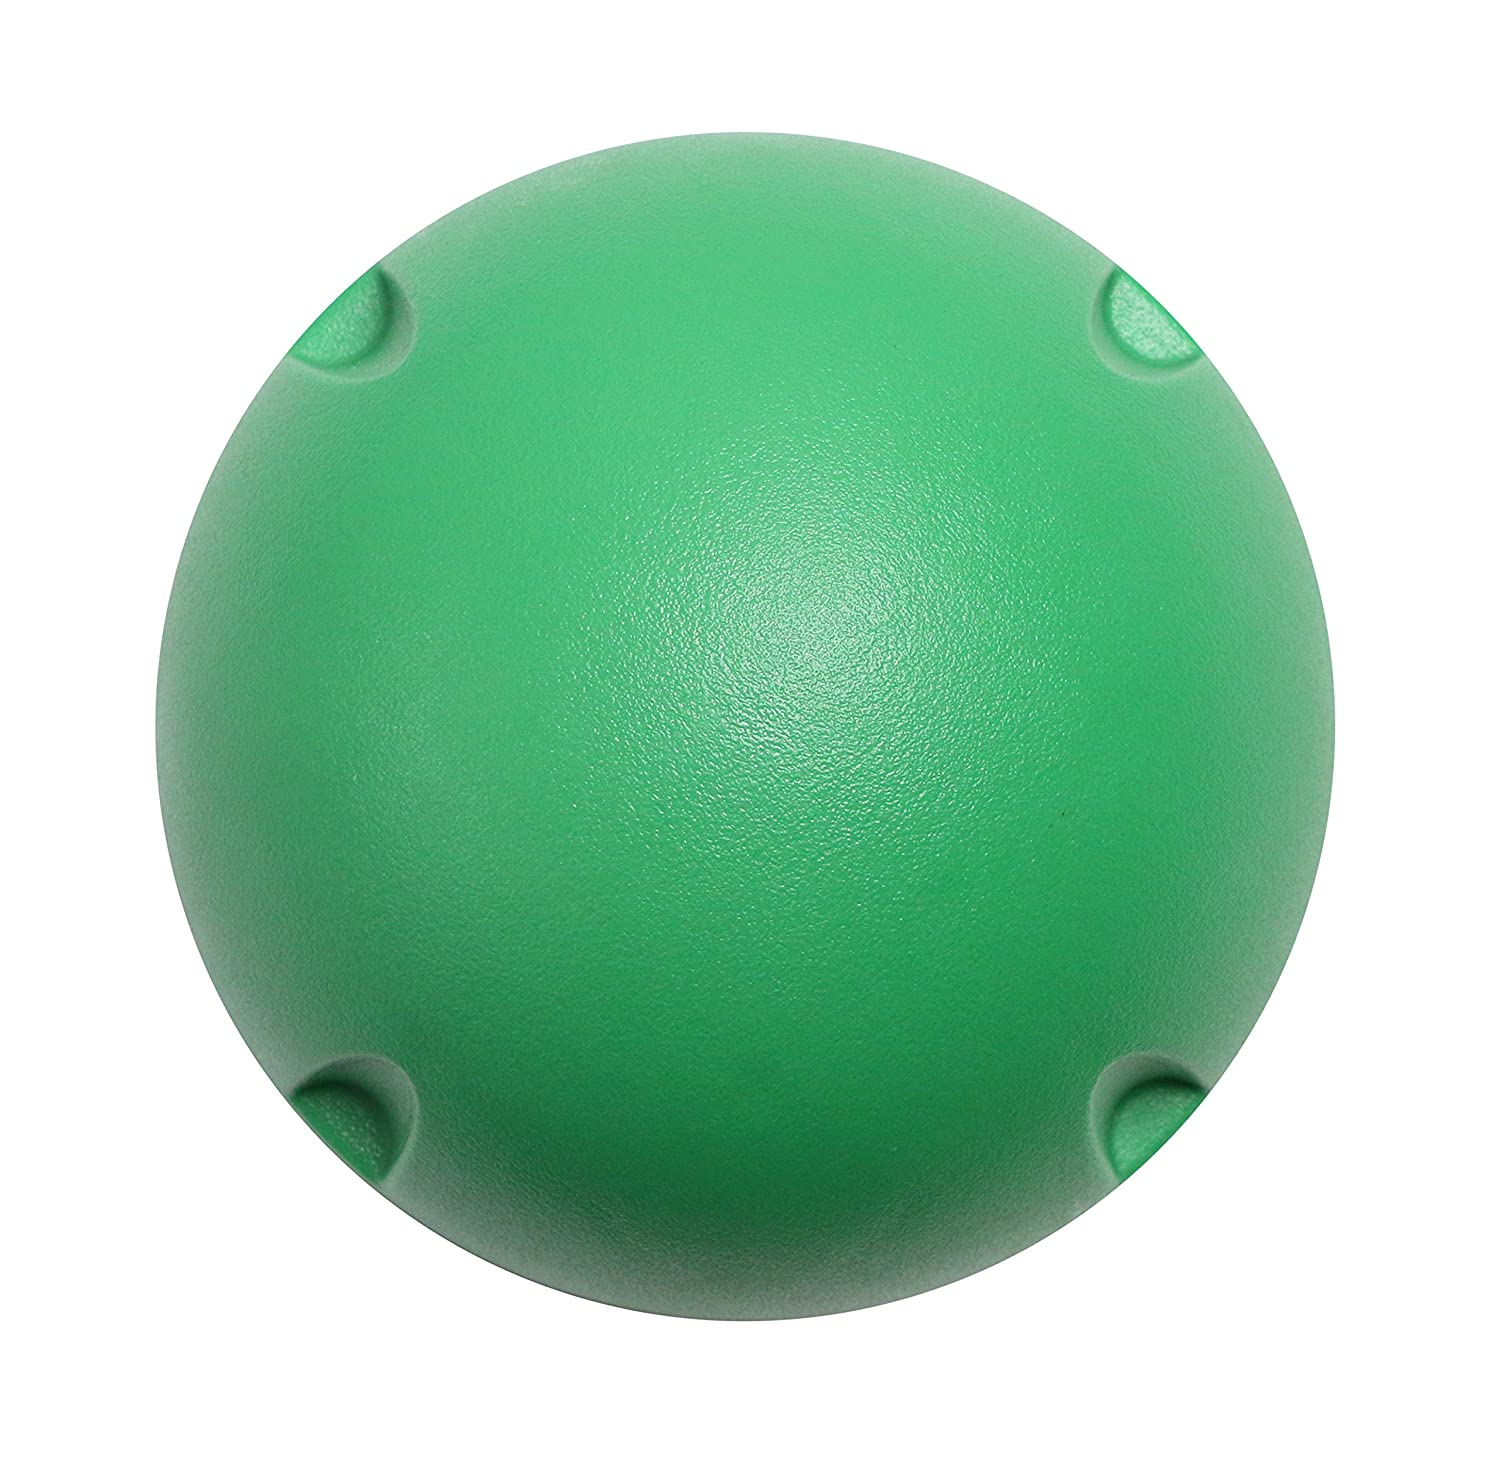 CanDo 10-1762 MVP Balance System, Level 3, Green Ball Fabrication Enterprises